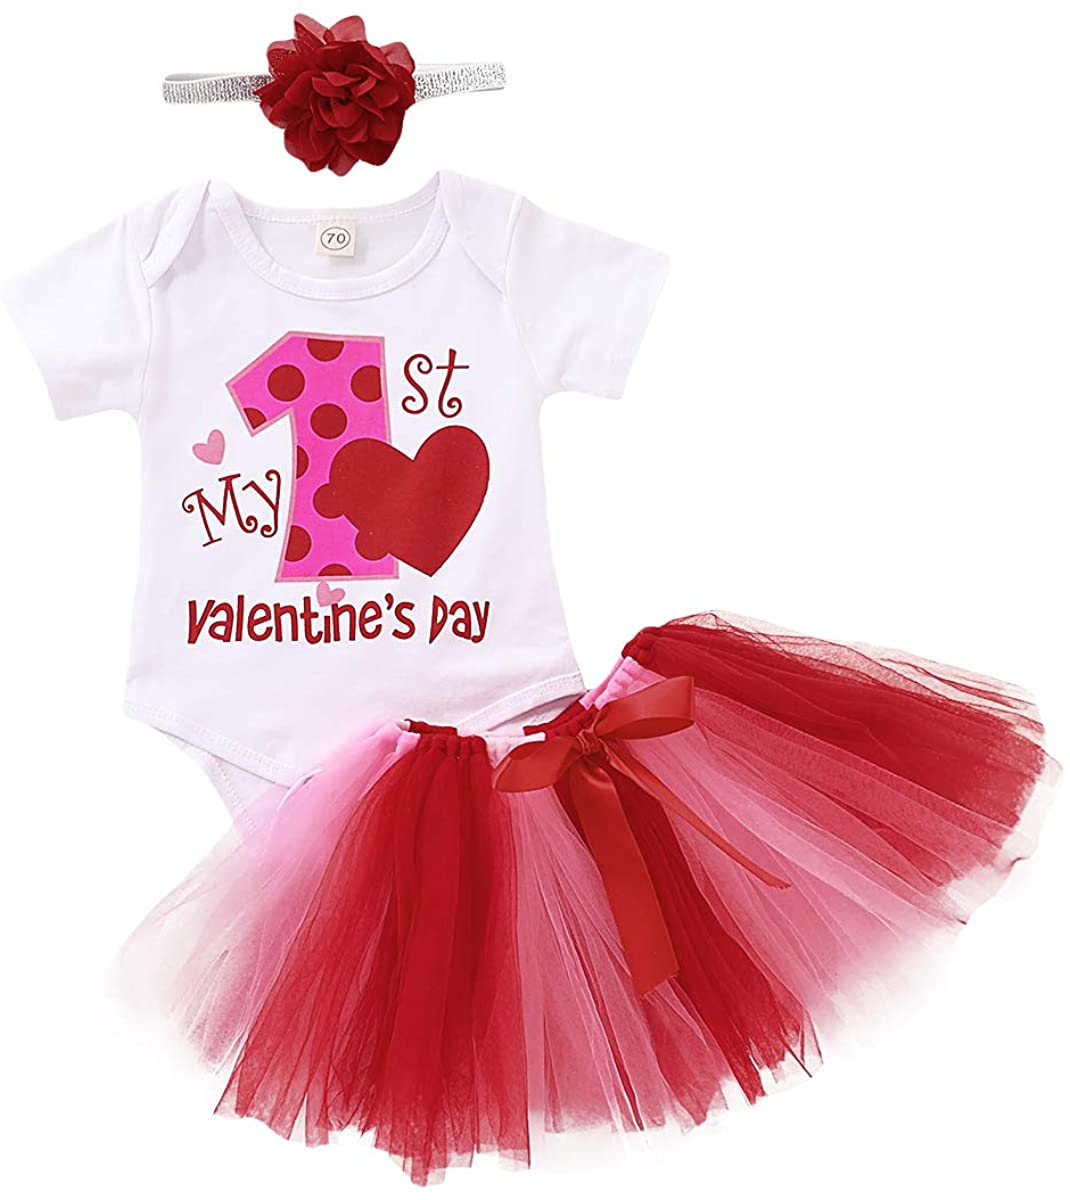 Valentines Day Outfits Newborn Infant Baby Girls My First Valentines Day Romper Bowknot Tutu Skirt Headband Clothing Sets